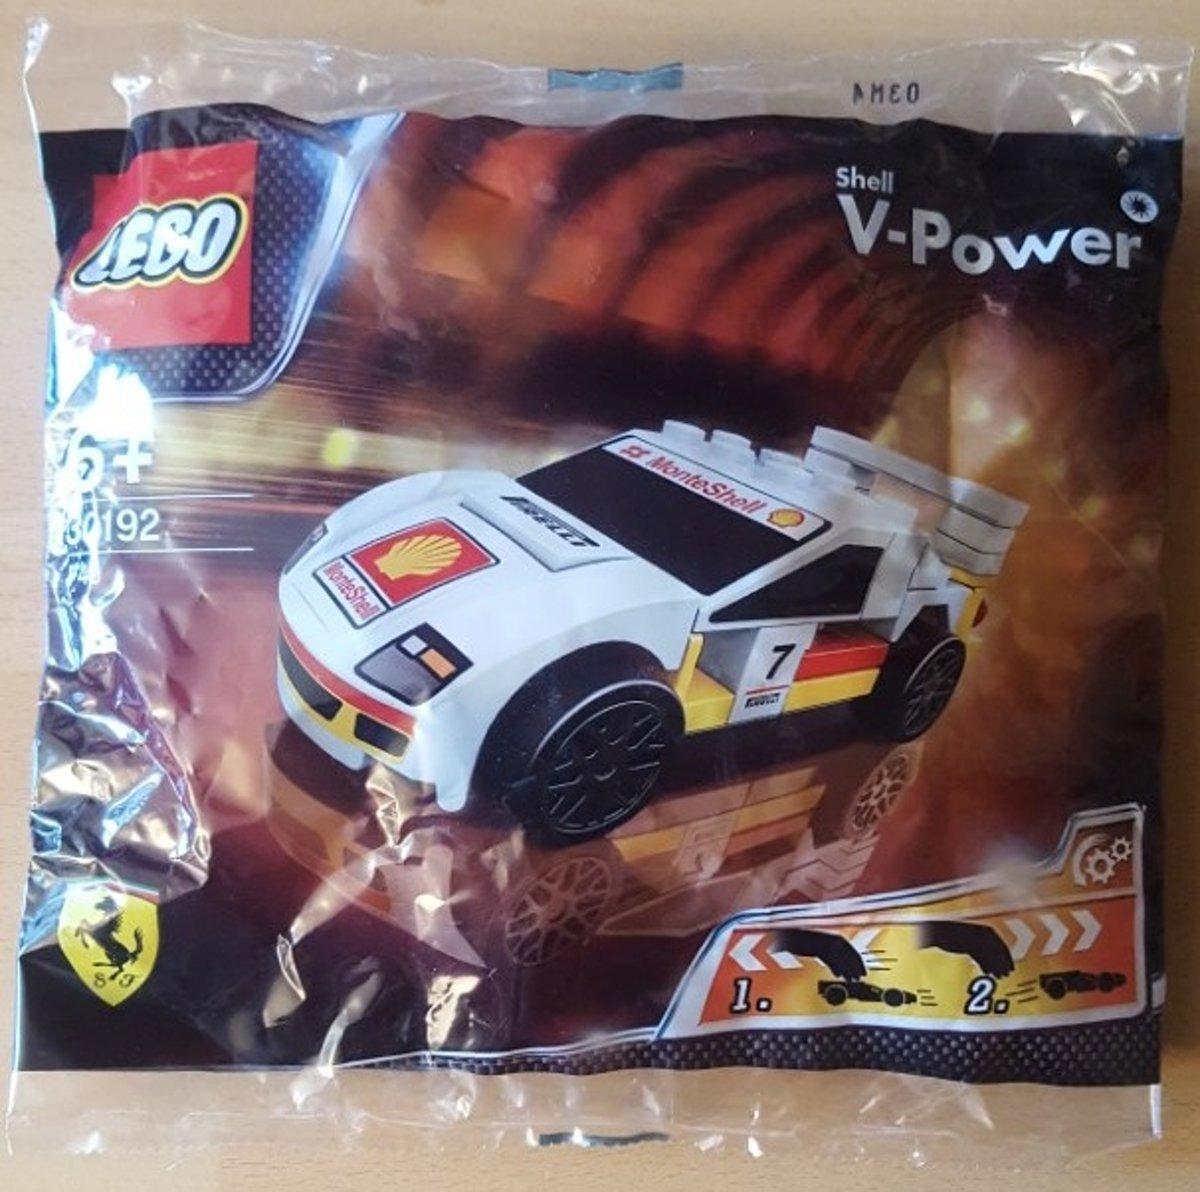 LEGO V-Power 30192 Ferrari F40